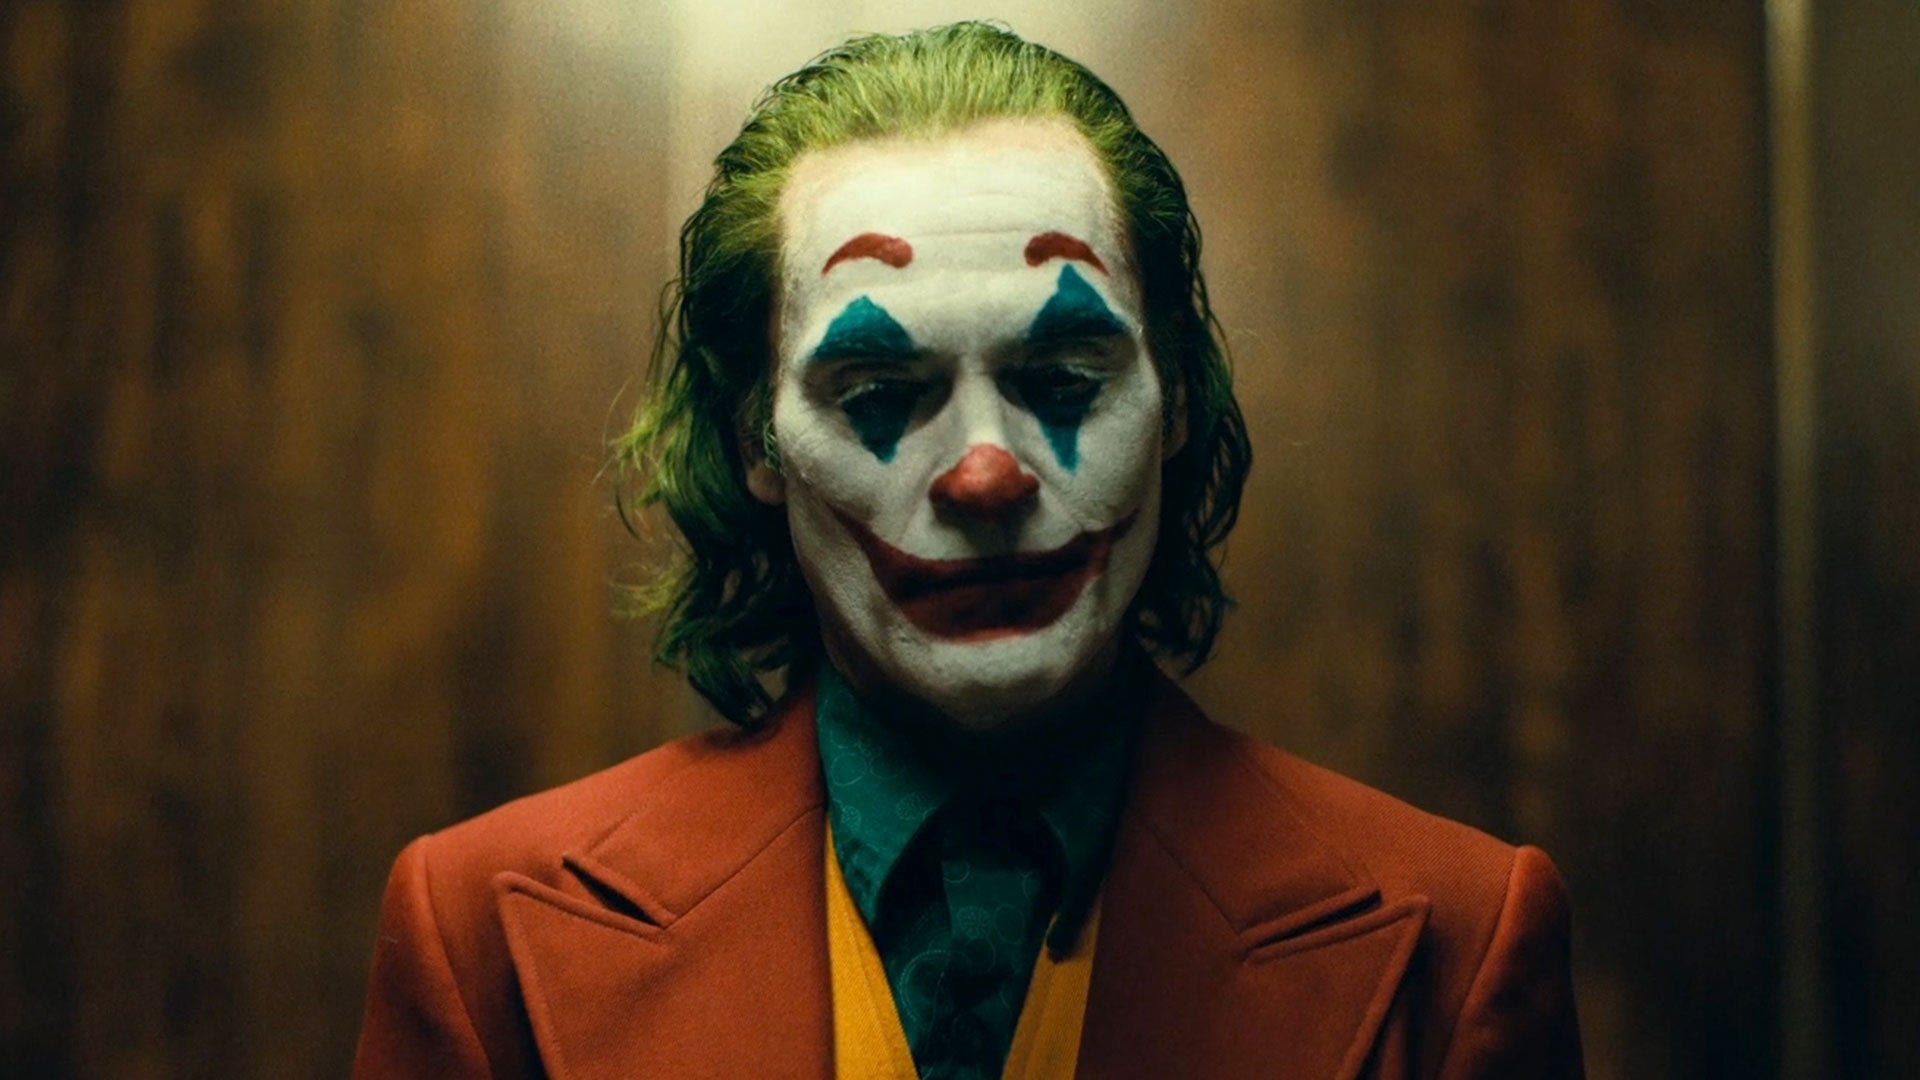 Movie Review: Joker (2019)